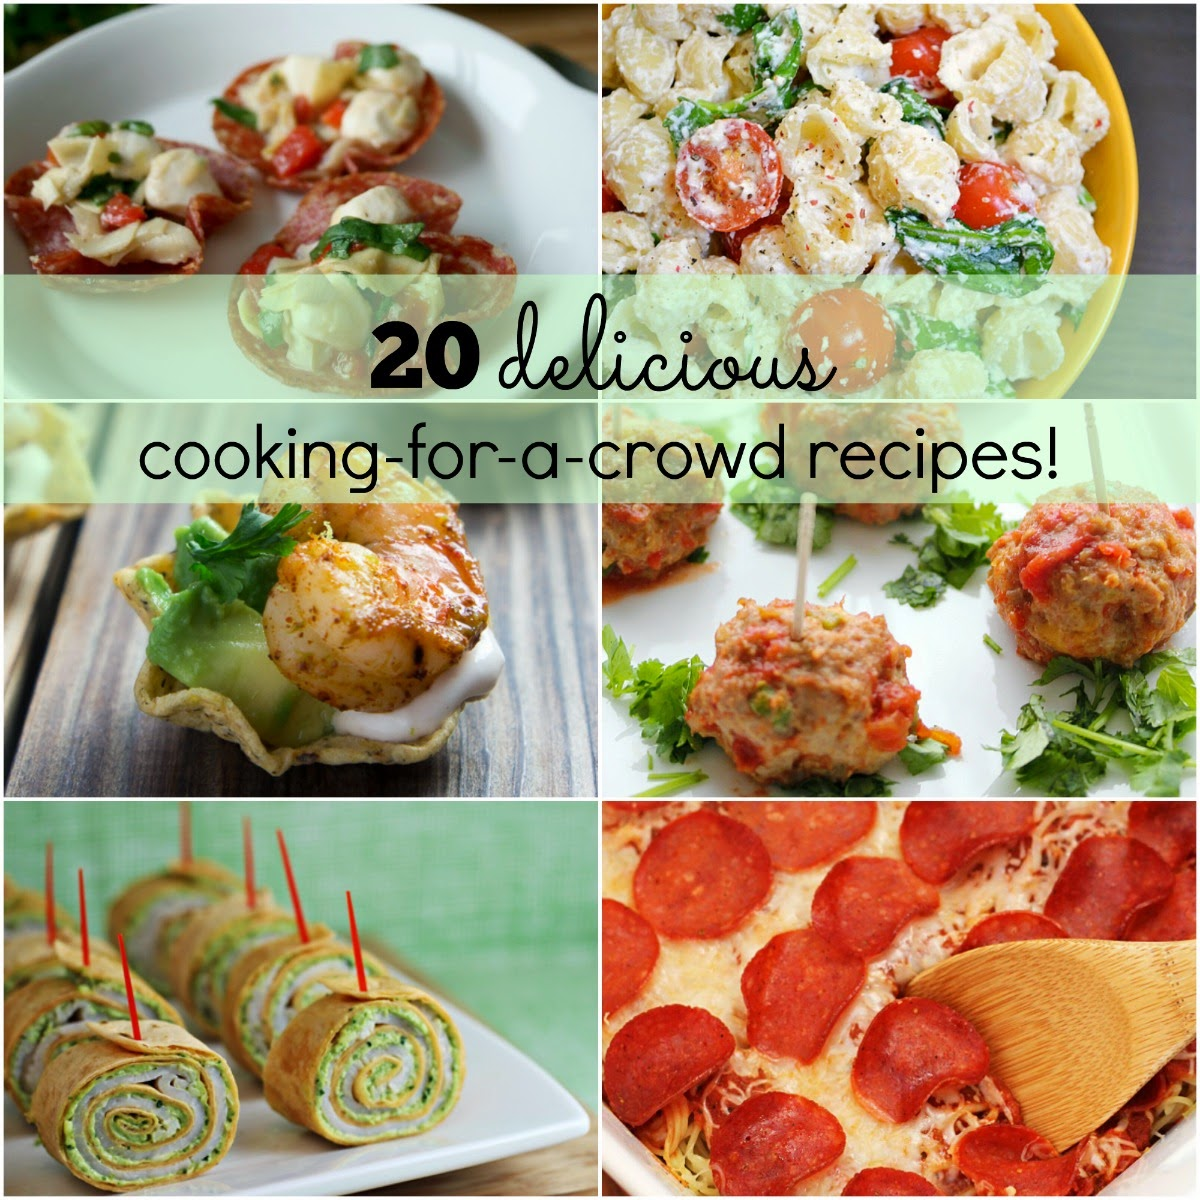 20 Delicious Cooking-for-a-Crowd Recipes